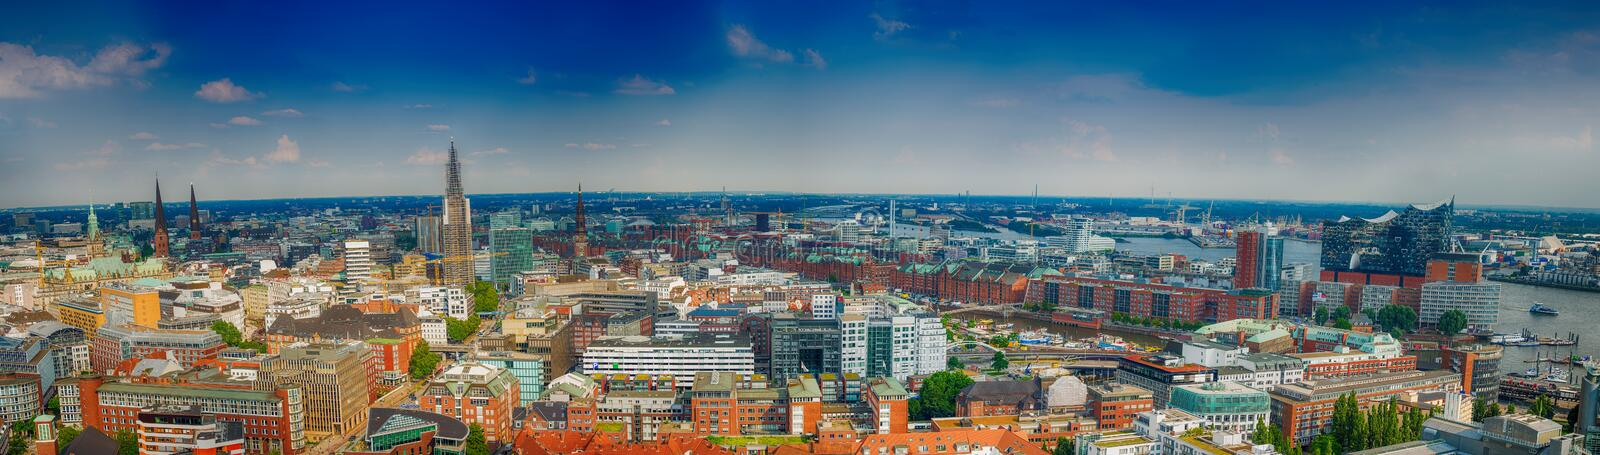 HAMBURG, GERMANY - JULY 2016: Panoramic view of city streets. Ha. Mburg is a major attraction in Germany royalty free stock images